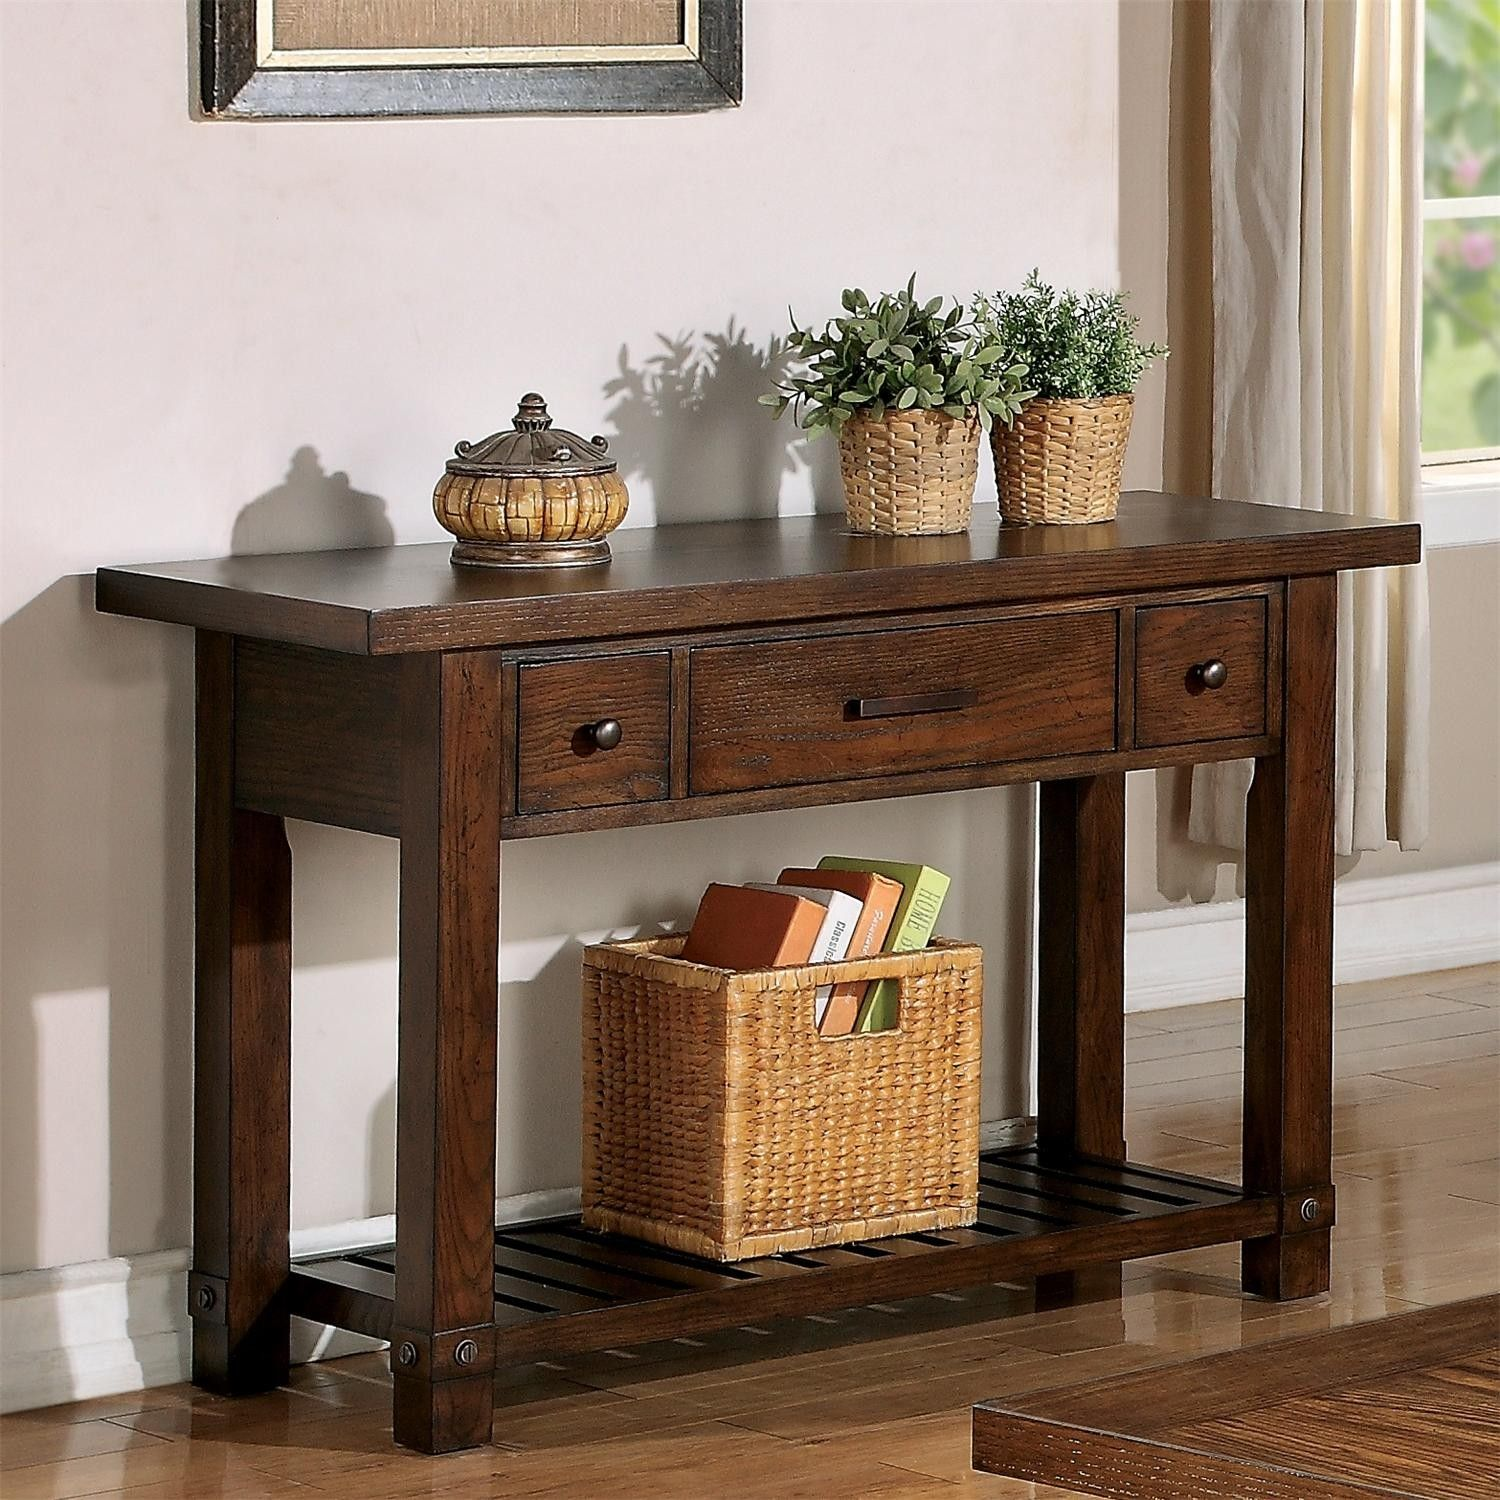 Riverside Furniture Windridge Console Table At Pottery Barn Entryway Table